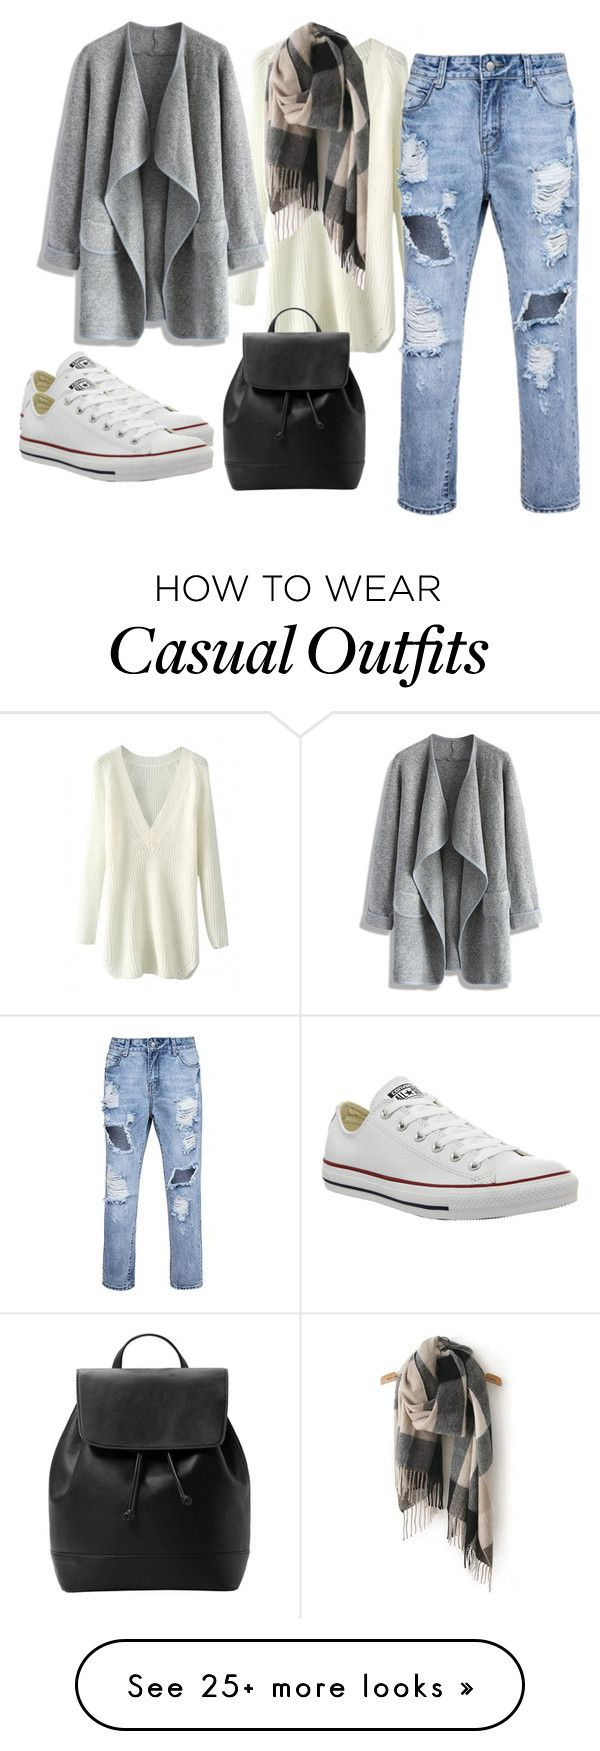 """""""casual outfit"""" by nurkovicselma on Polyvore featuring moda, Converse, Chicwish y MANGO"""